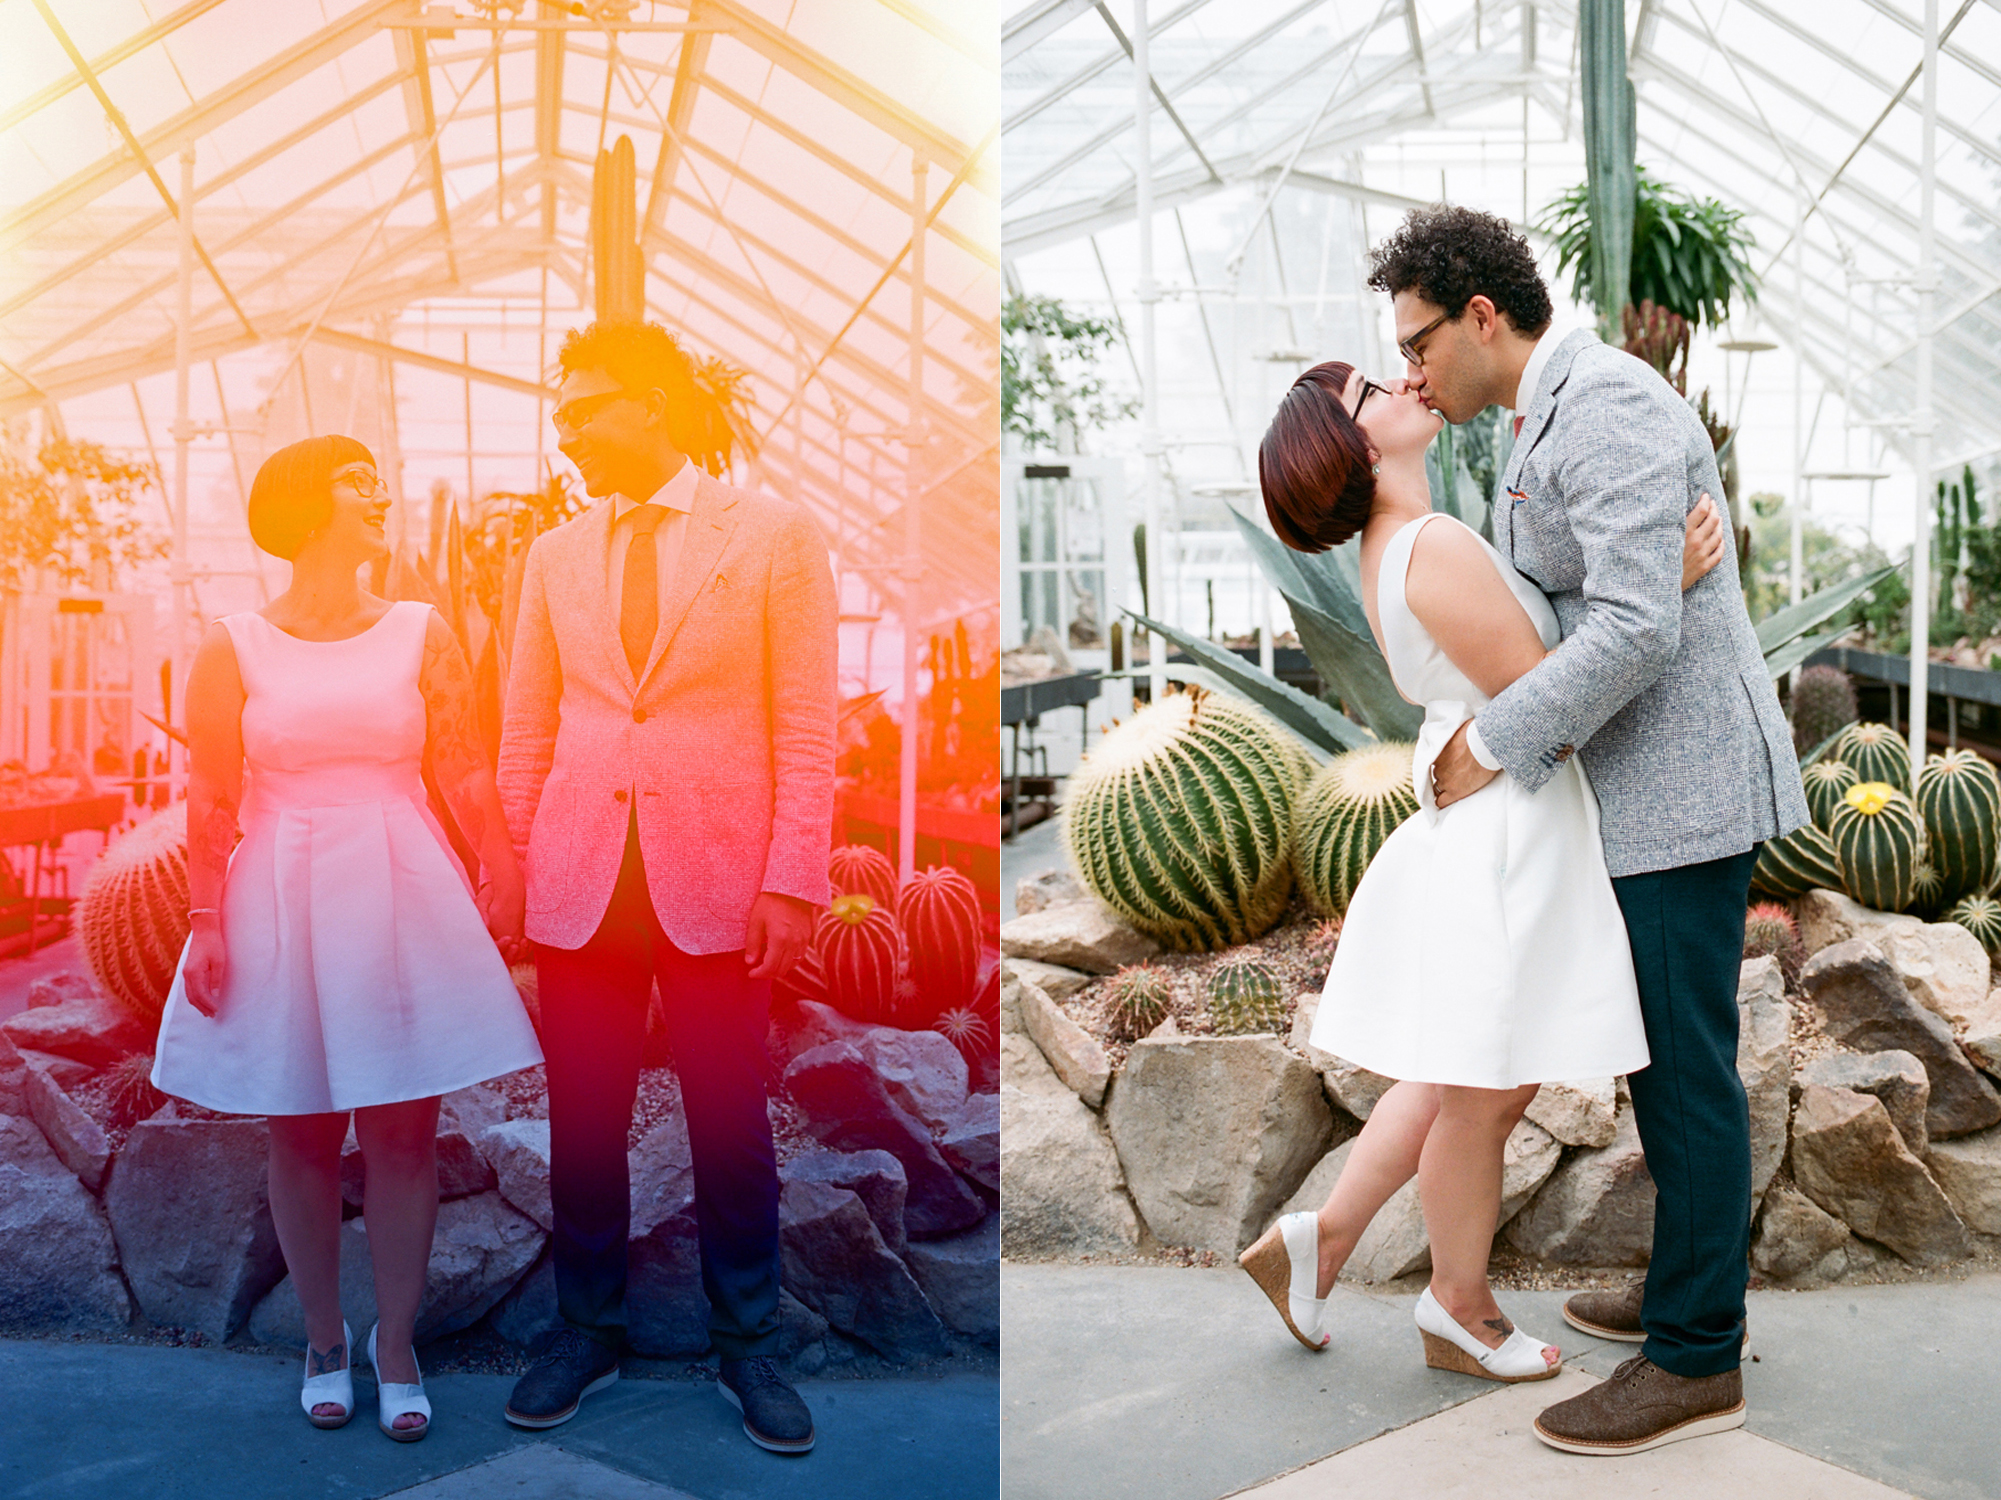 Bride and Groom Portraits at a Volunteer Park Conservatory Wedding